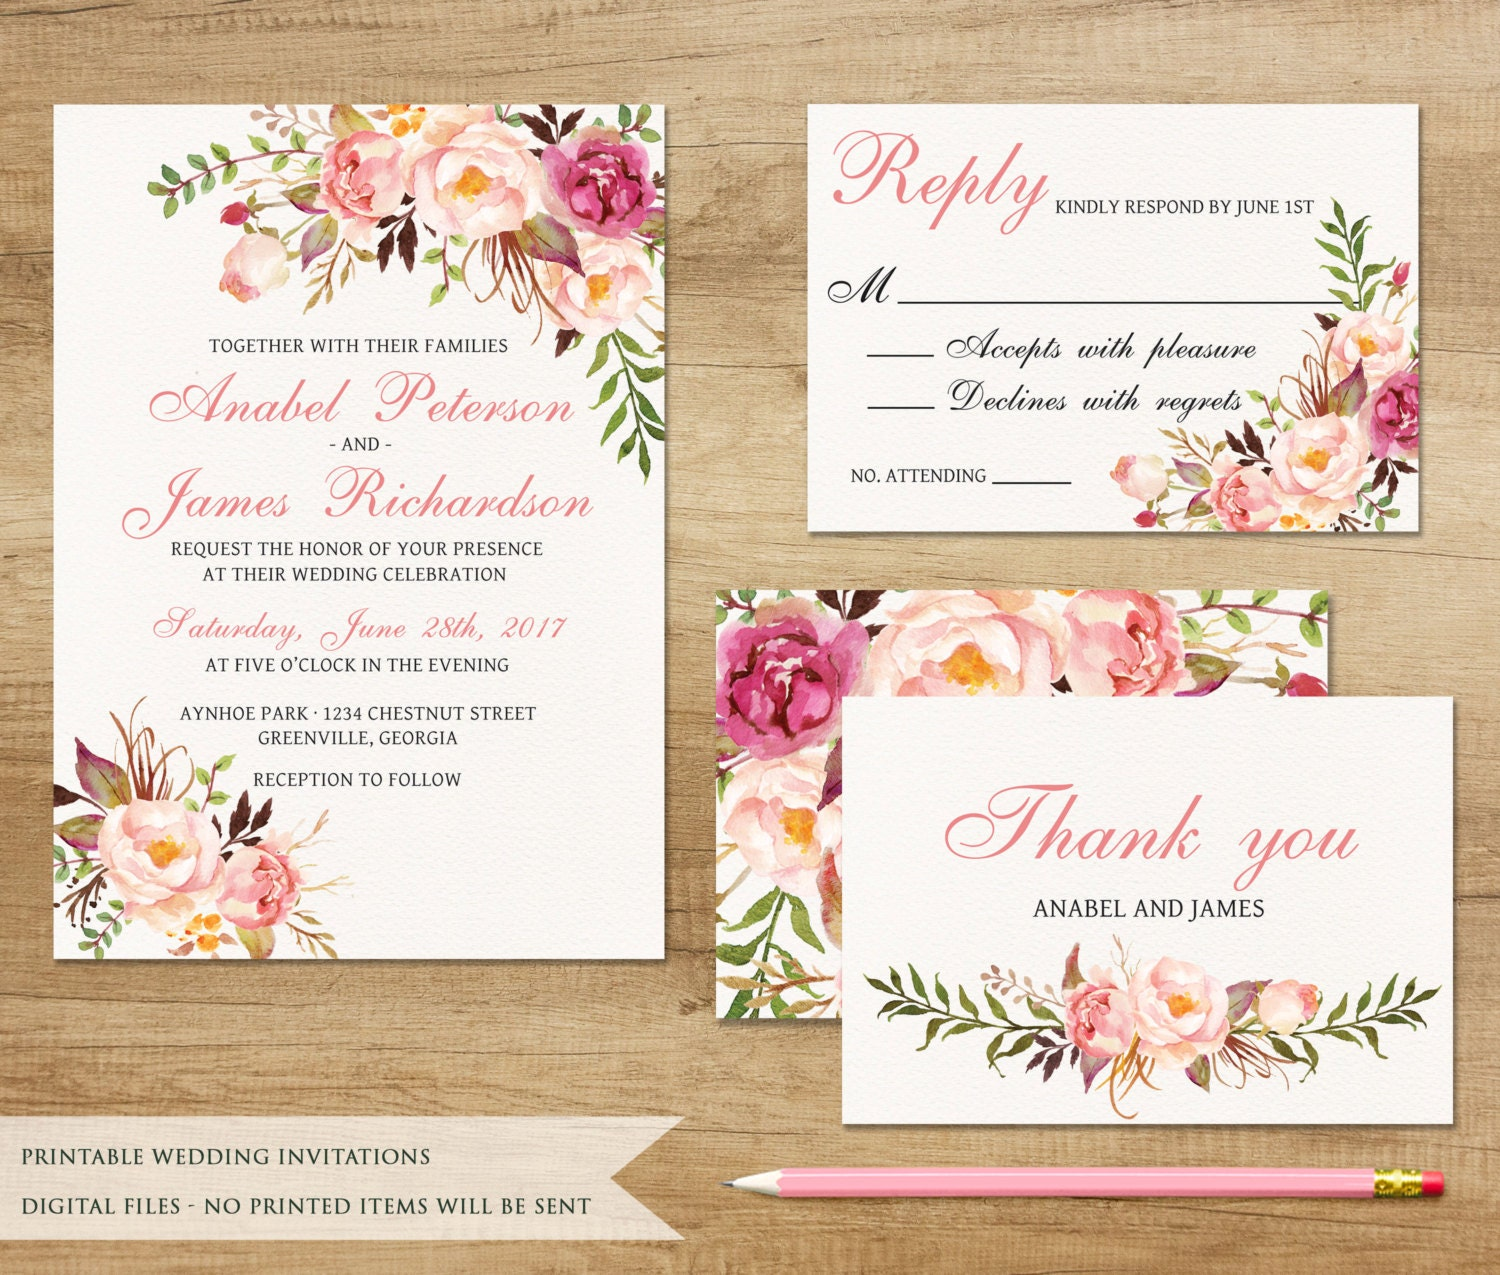 Floral Wedding Invitation. Printable Wedding Invitation